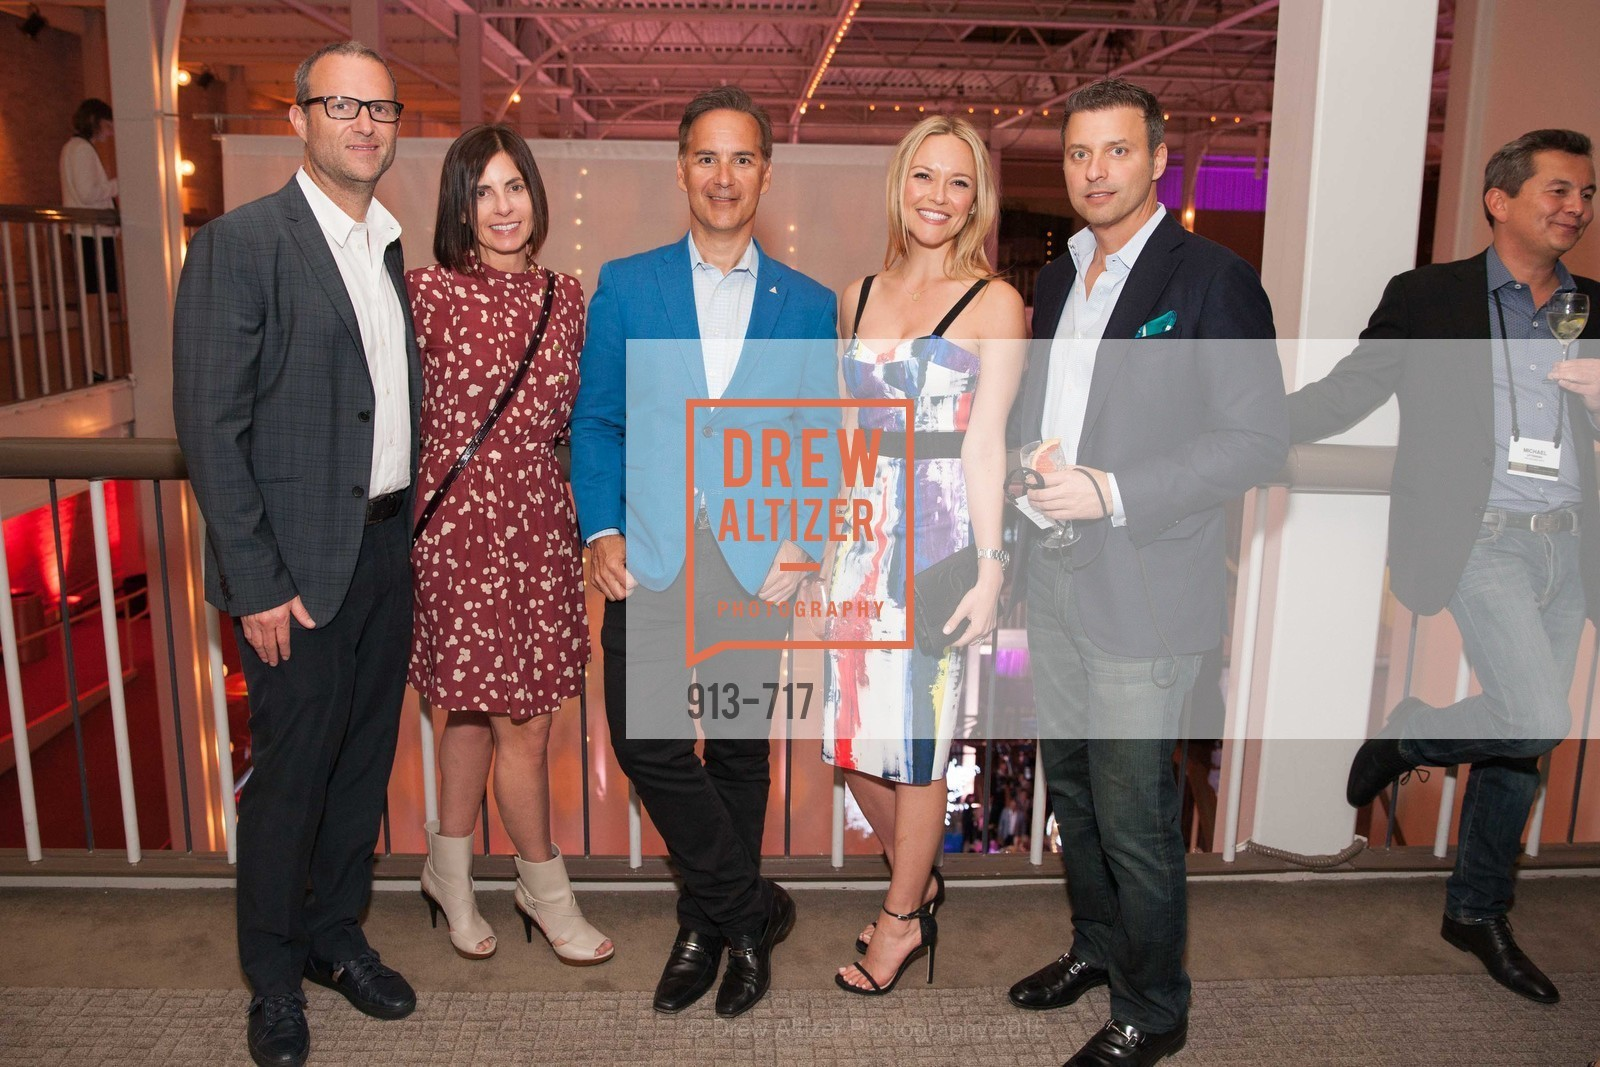 David Lake, Deborah Lake, Duncan Toppliss, Lisa Oberwager, Brad Oberwager, YPO Wine Festival, US, May 11th, 2015,Drew Altizer, Drew Altizer Photography, full-service agency, private events, San Francisco photographer, photographer california